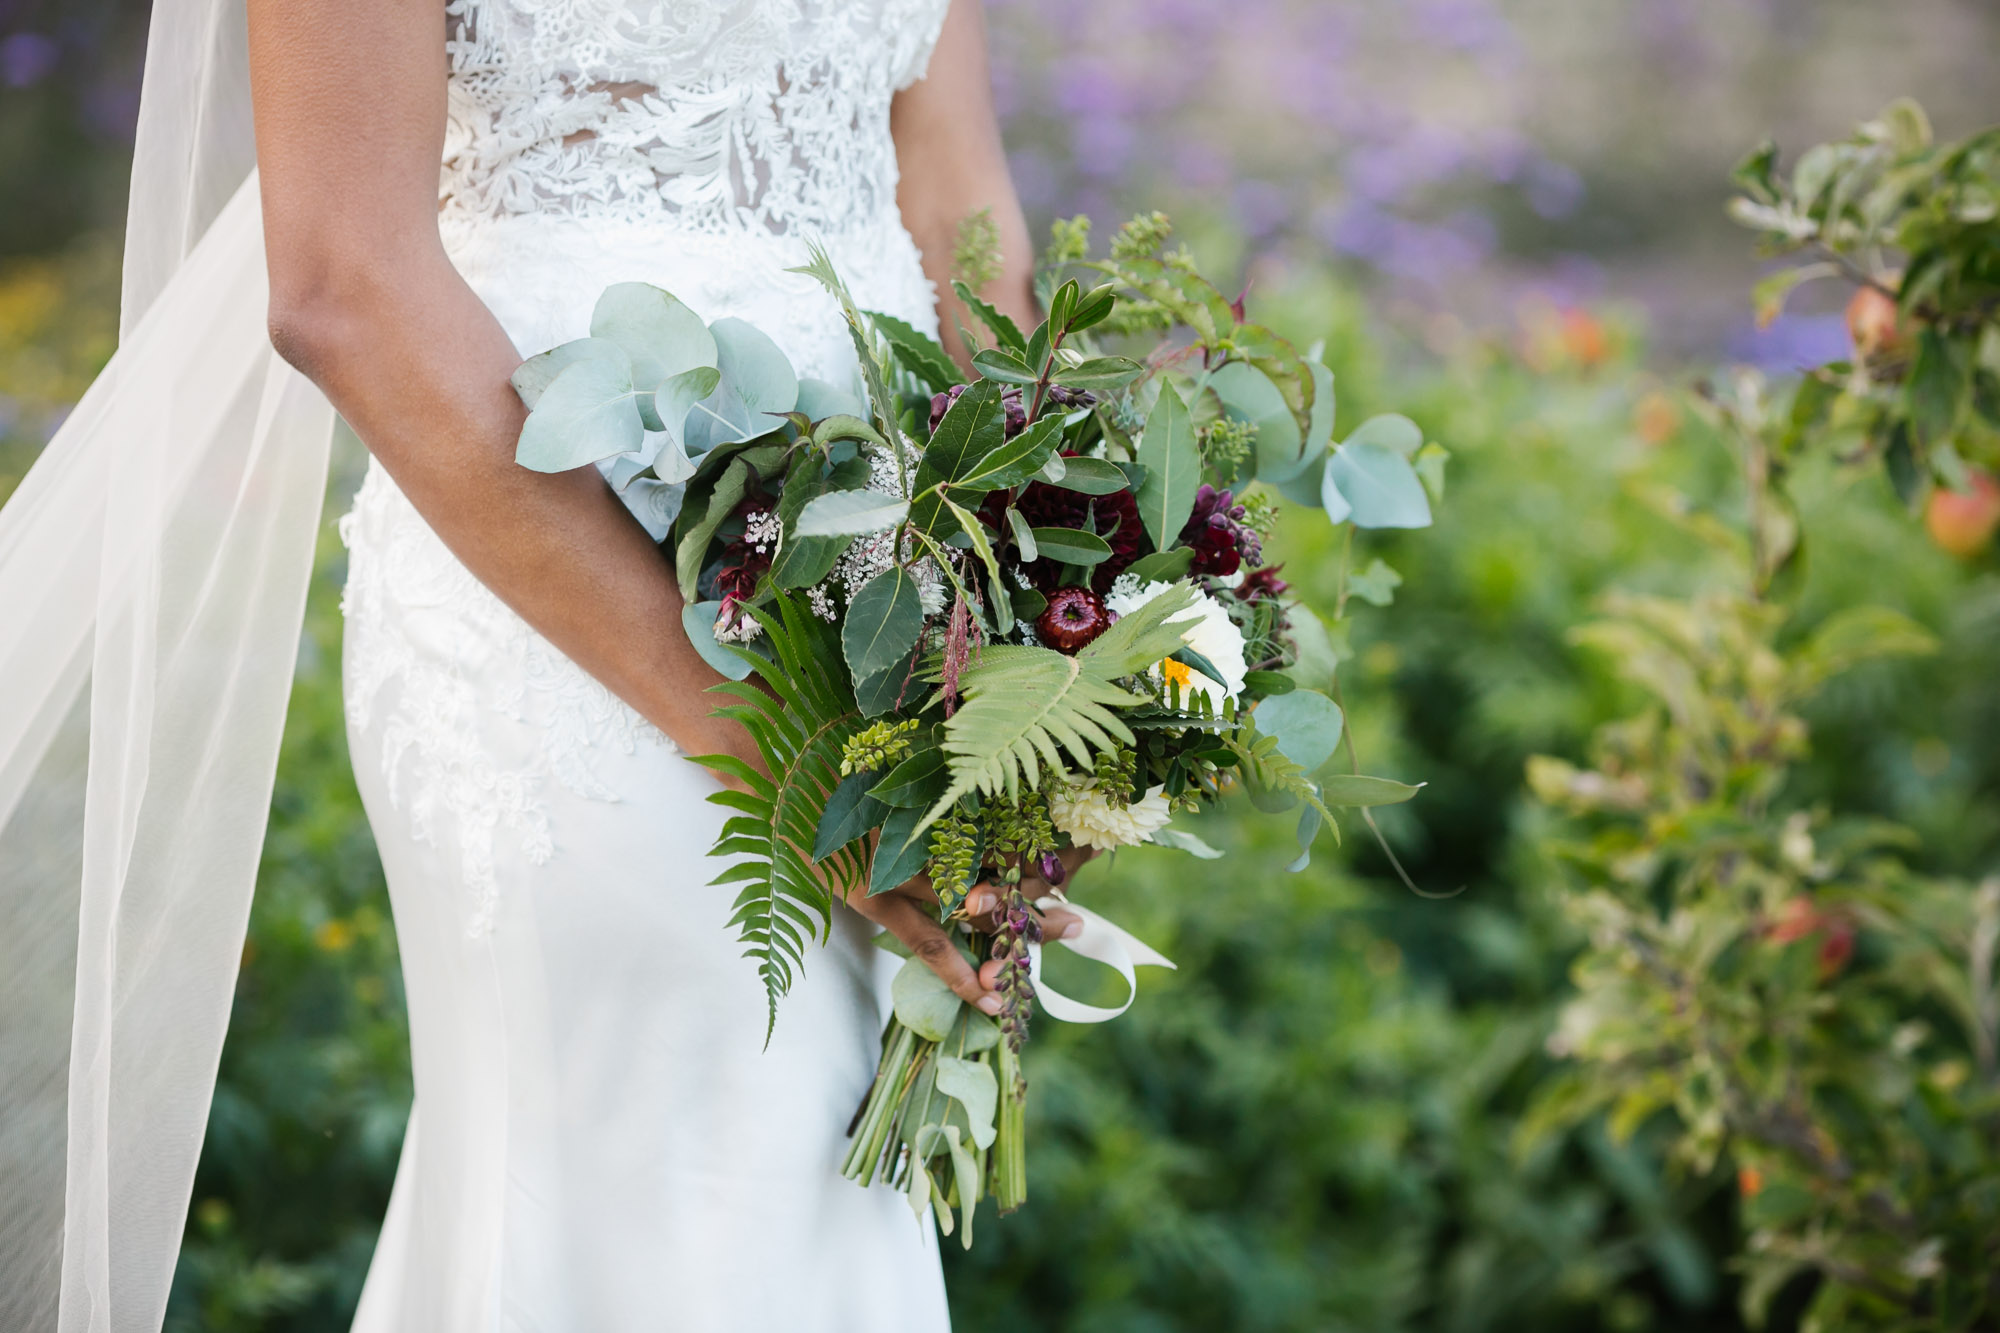 Handmade bouquet made from farm fresh flowers and ferns